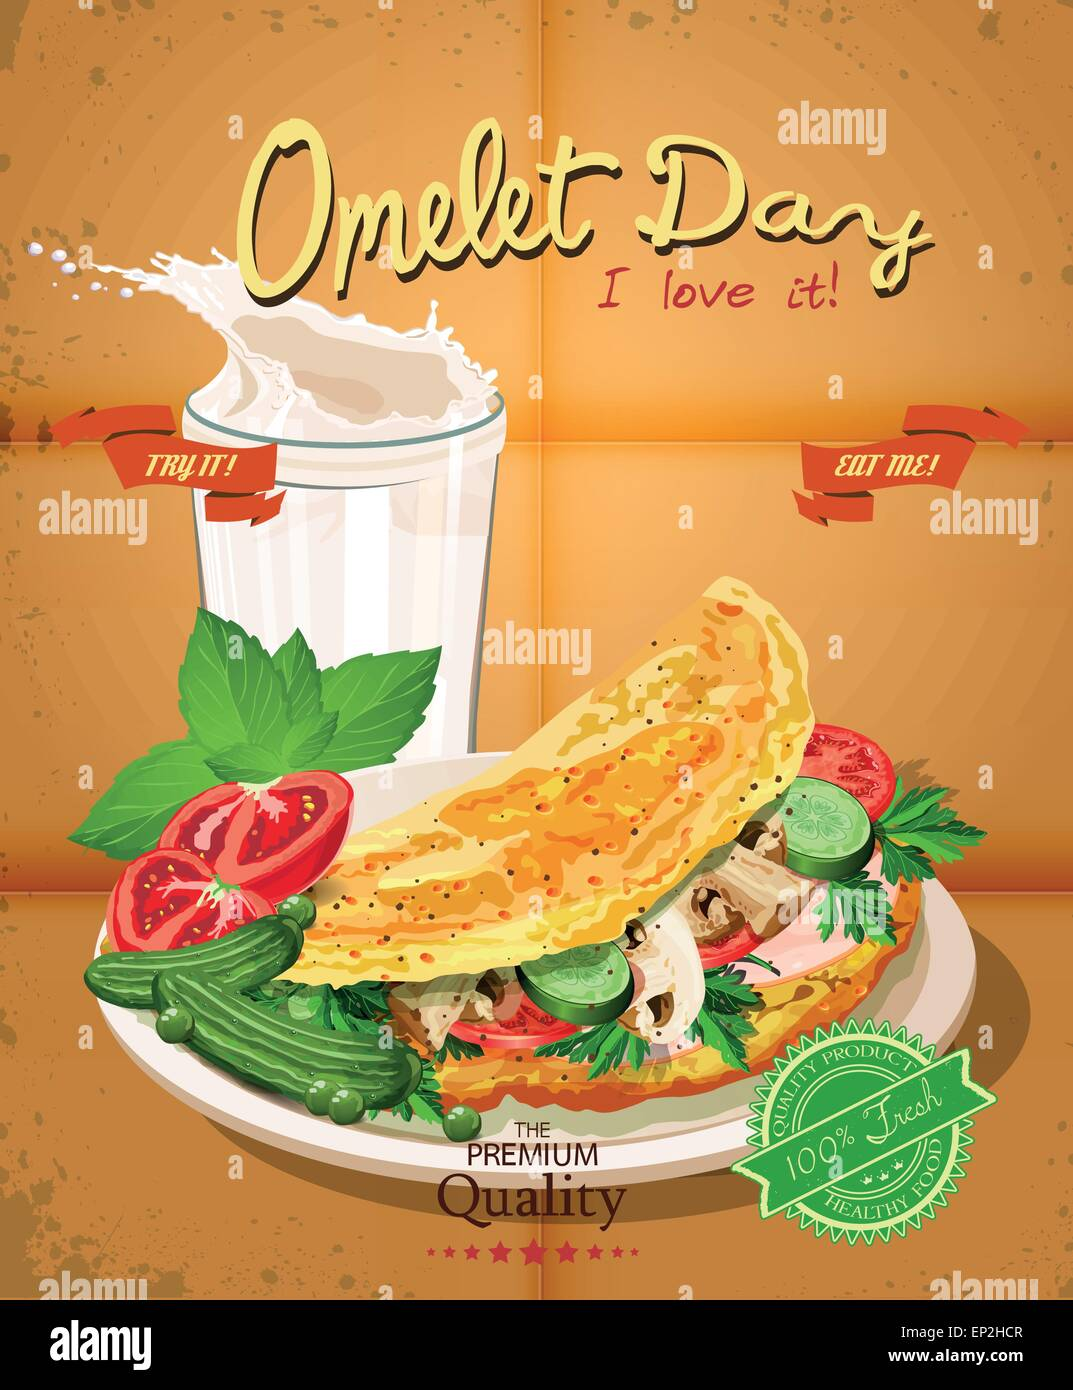 Omelet. Diet healthy food - scrambled eggs. Poster in vintage style - Stock Vector